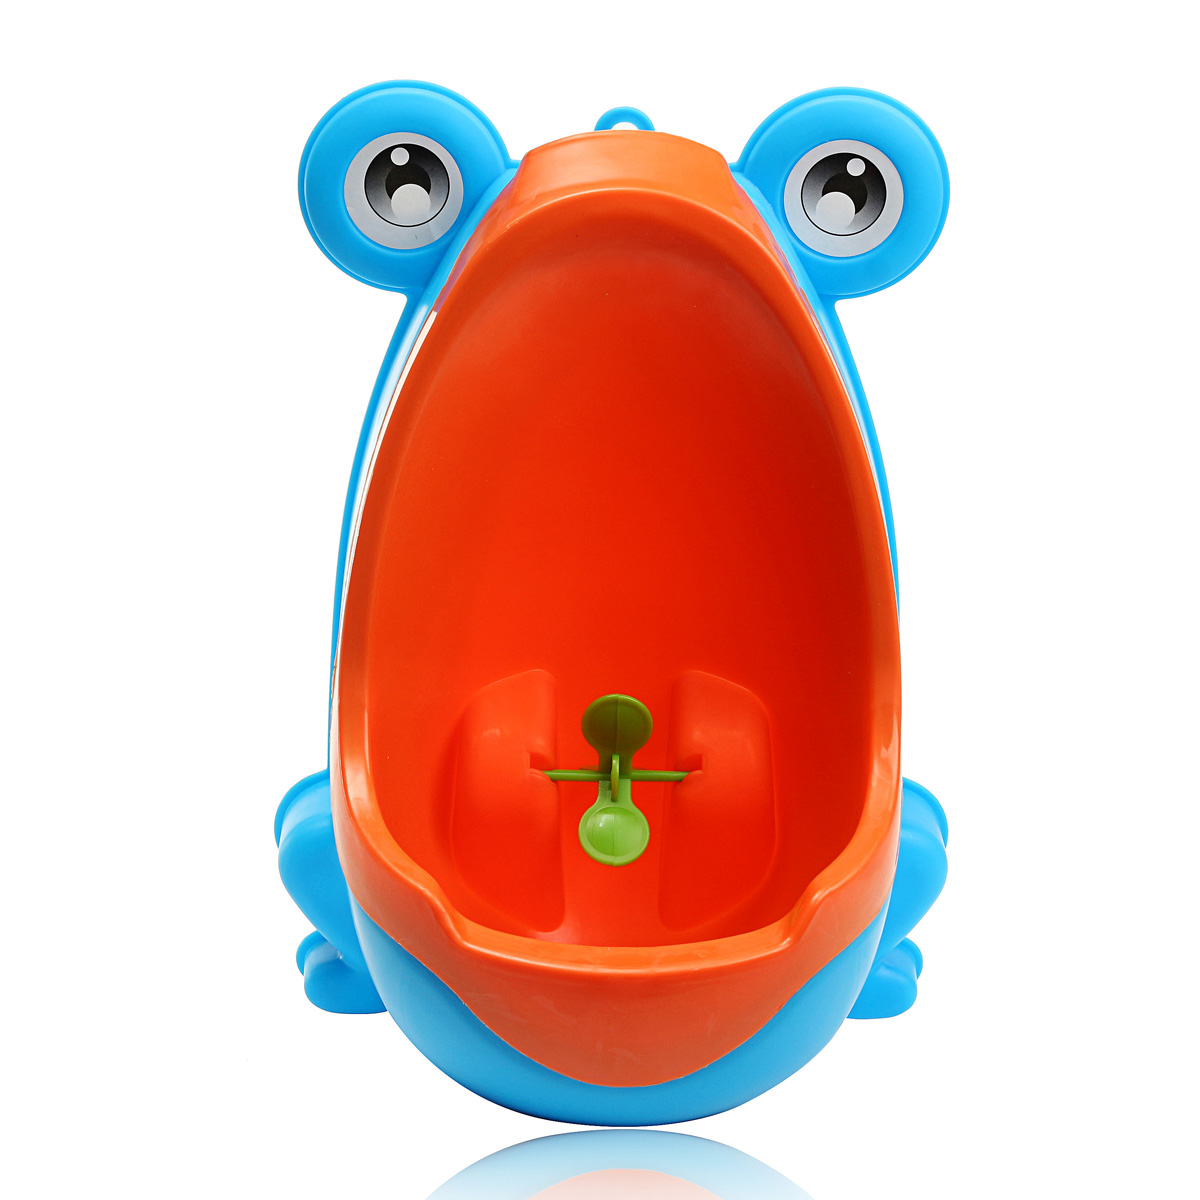 Meigar Cute Frog Potty Training Urinal Toilet Urine Train Froggy Potty for Children Kids Toddler Baby Boys... by Meigar